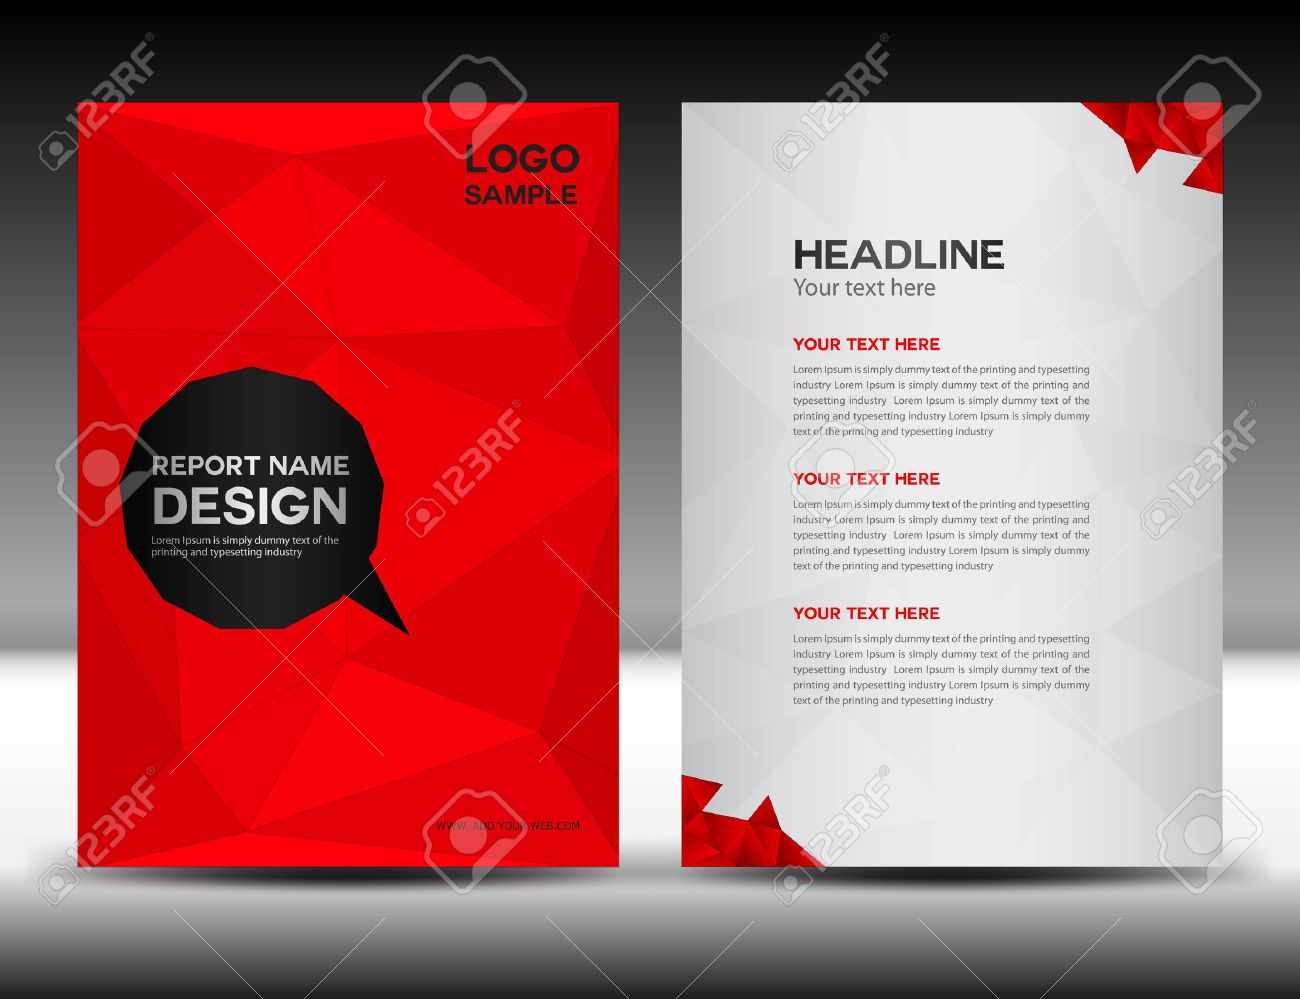 red cover annual report template polygon background brochure red cover annual report template polygon background brochure design cover template flyer